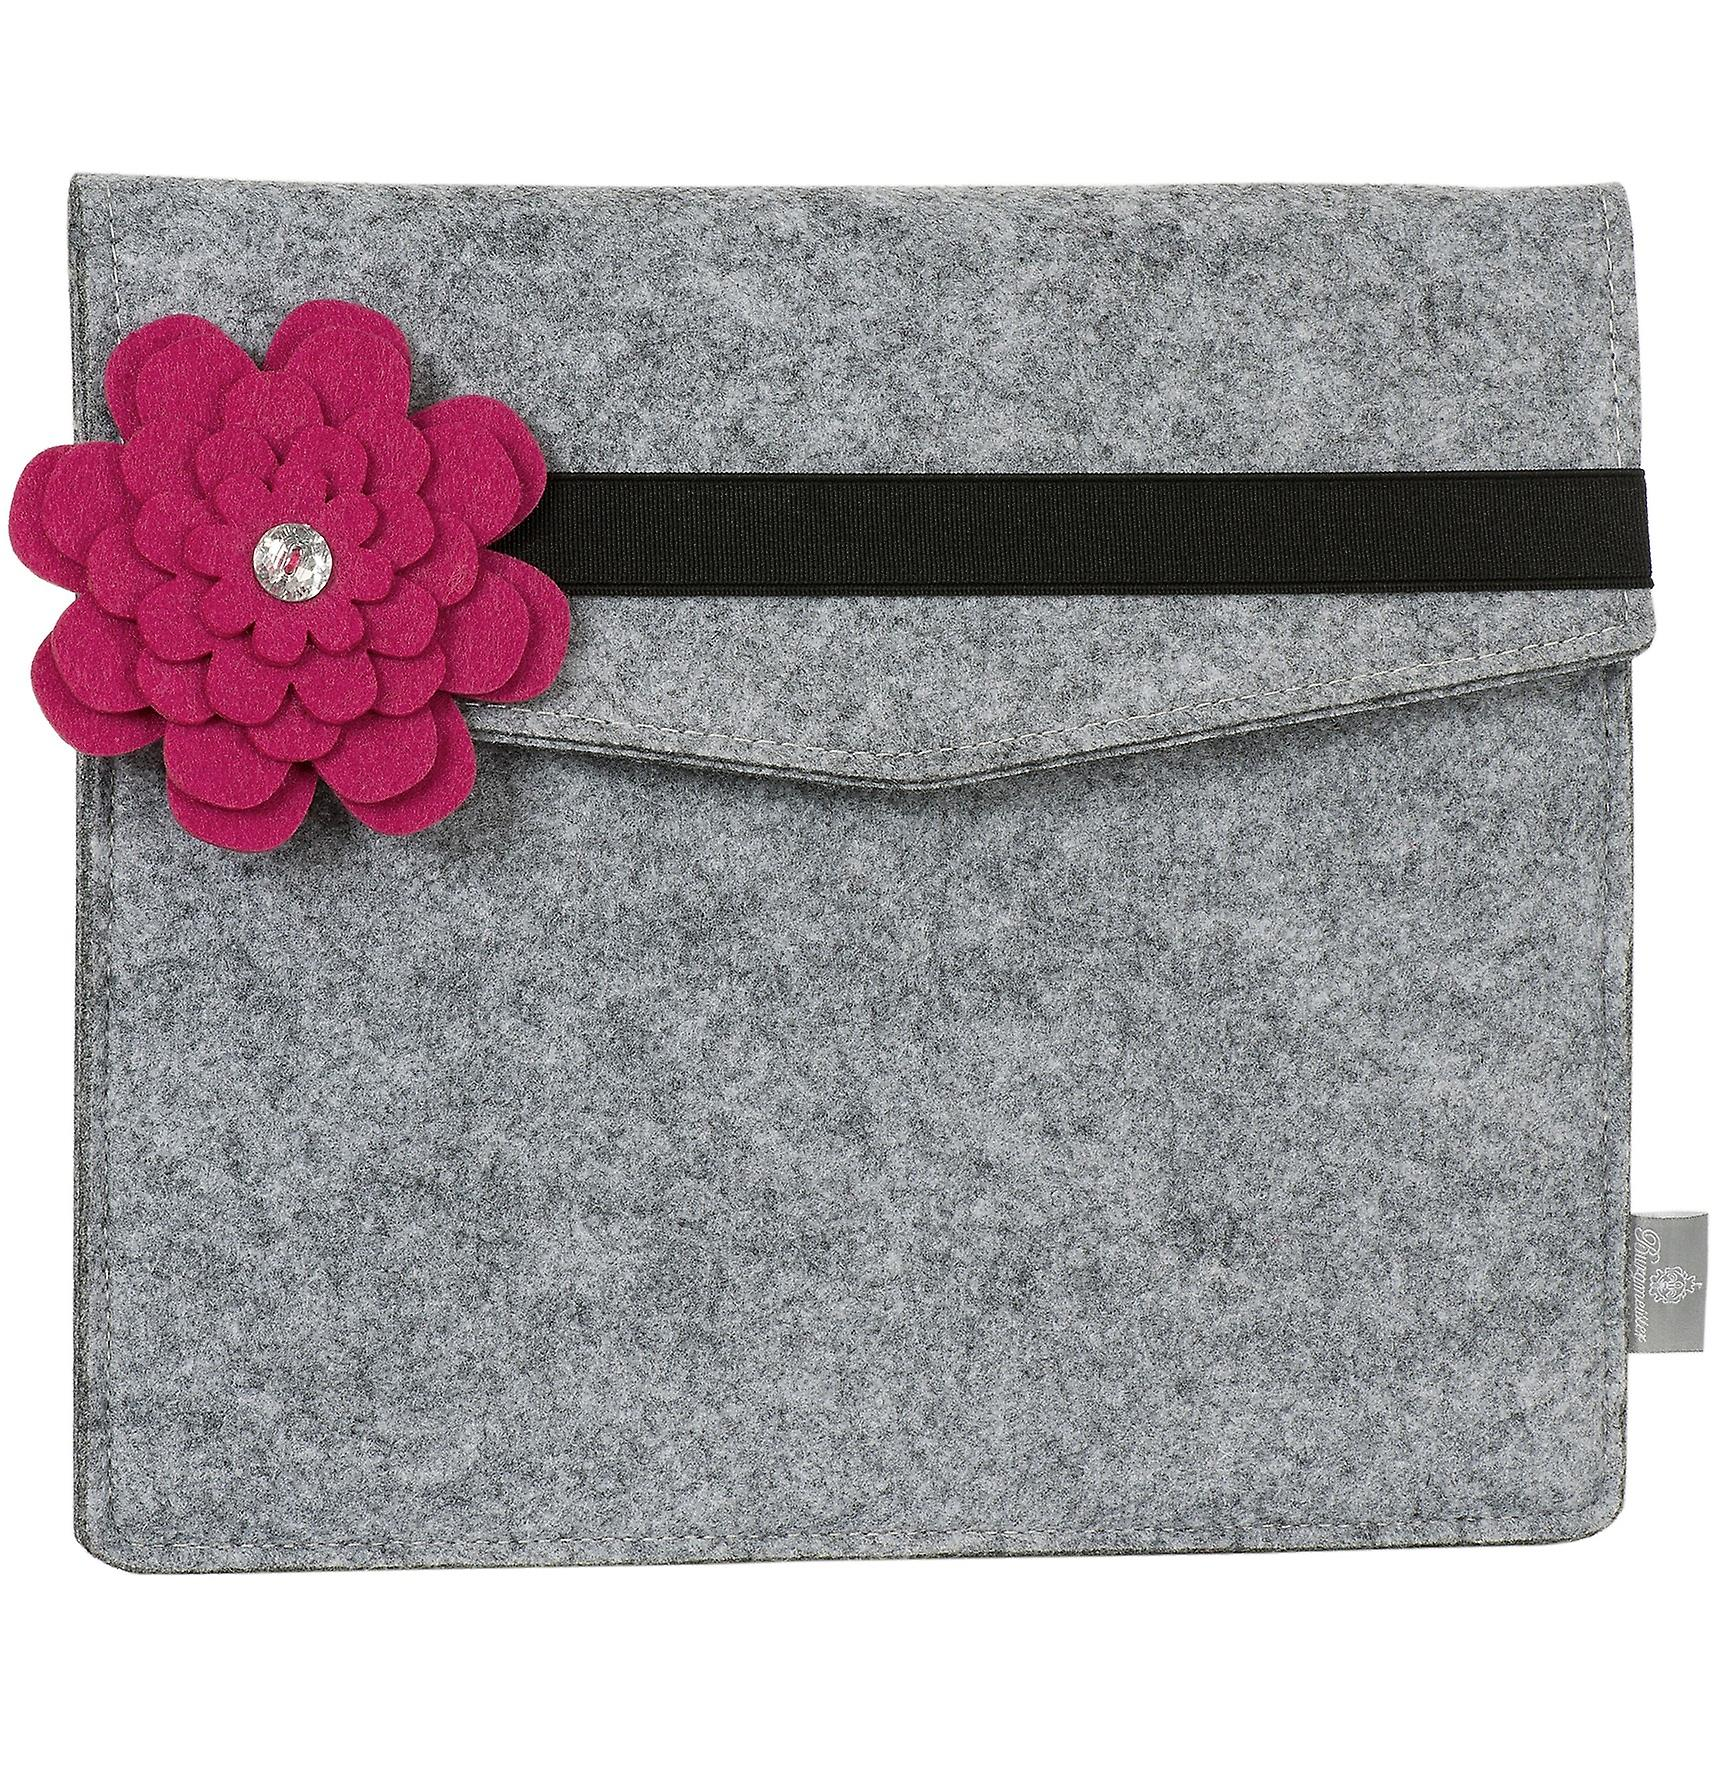 Burgmeister ladies/gents Ipad-/Tablet PC cover felt, HBM3018-164